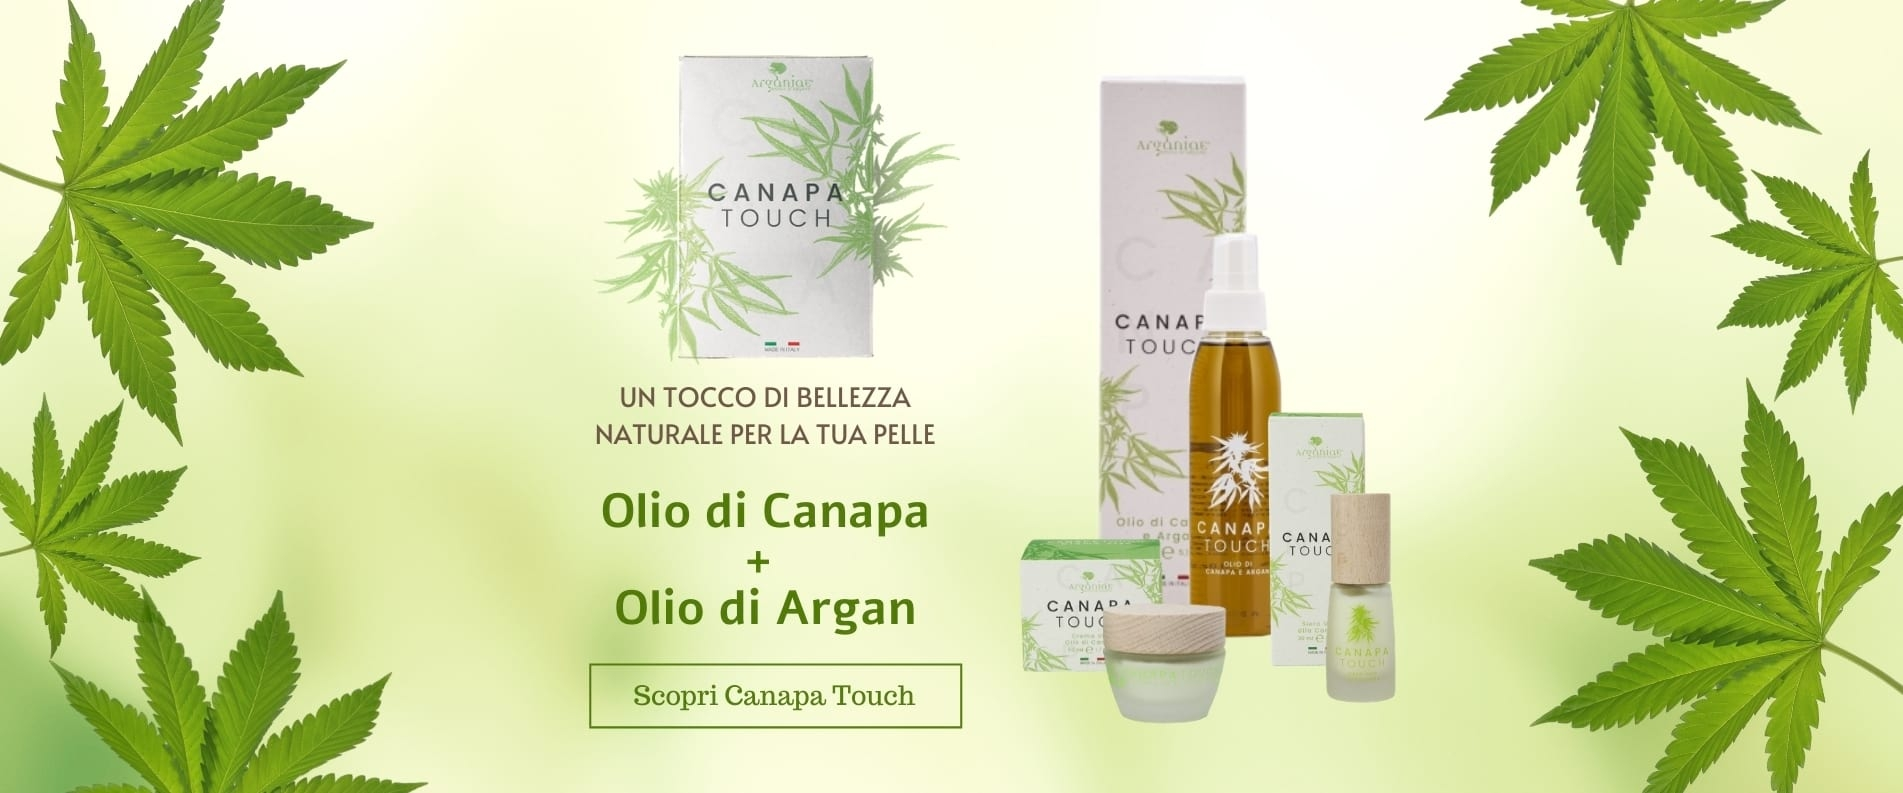 Linea Canapa Touch